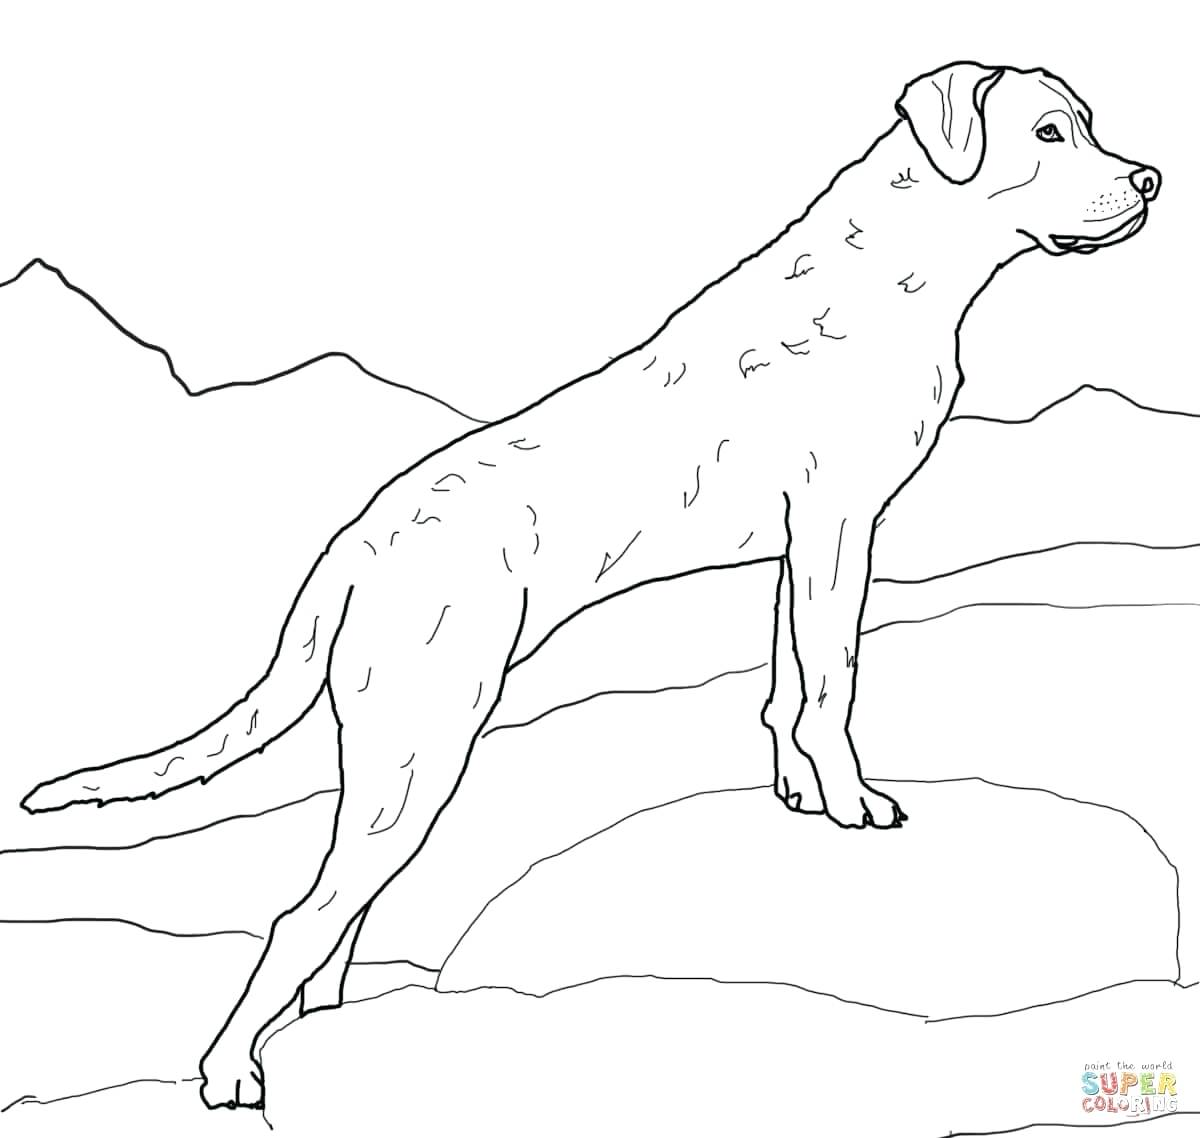 Black Lab Line Drawing at GetDrawings.com | Free for personal use ...